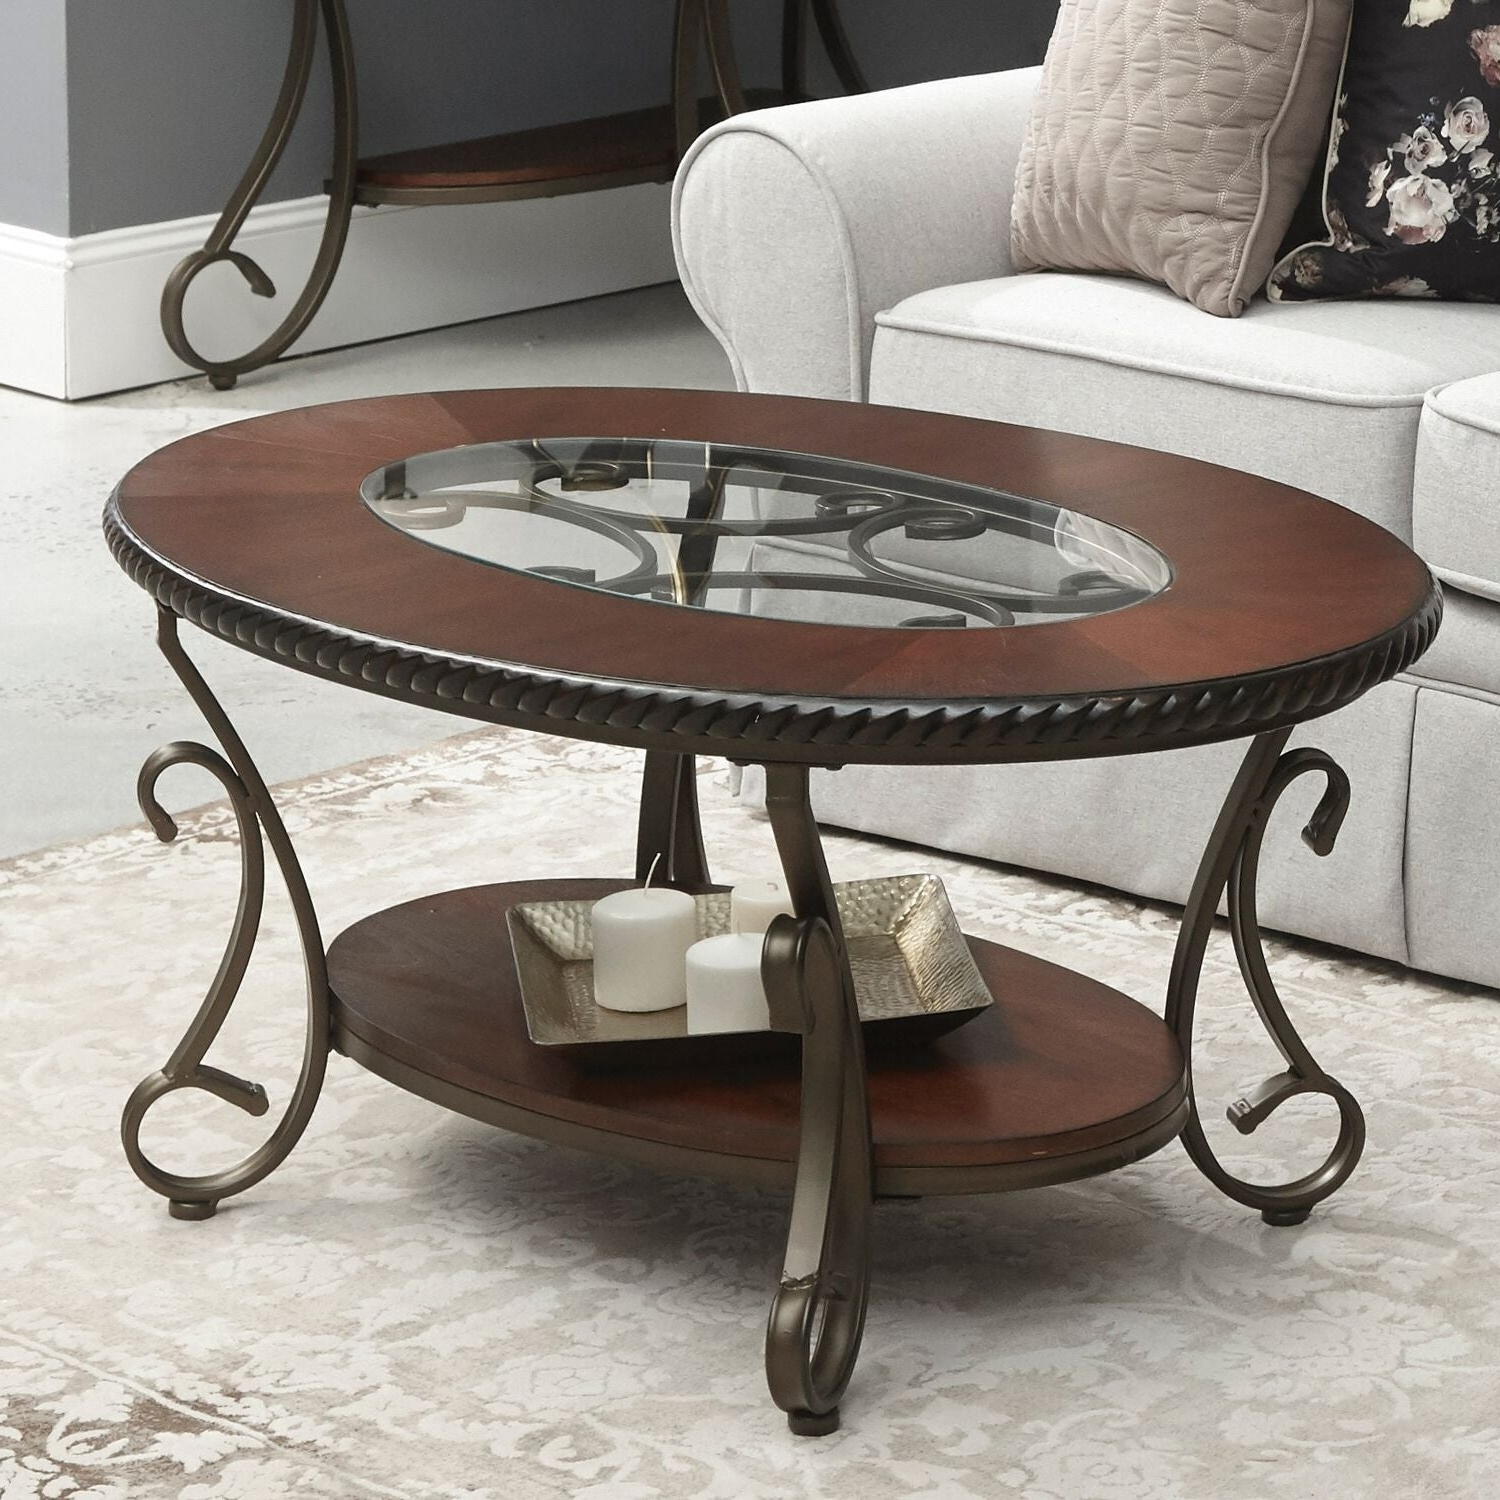 Most Recent Evalline Modern Dark Walnut Coffee Tables For Home Source Cragin Coffee Table With Glass Inset – Dark Finish – 45.3 In Wide X 29.5 In Deep X (View 8 of 20)